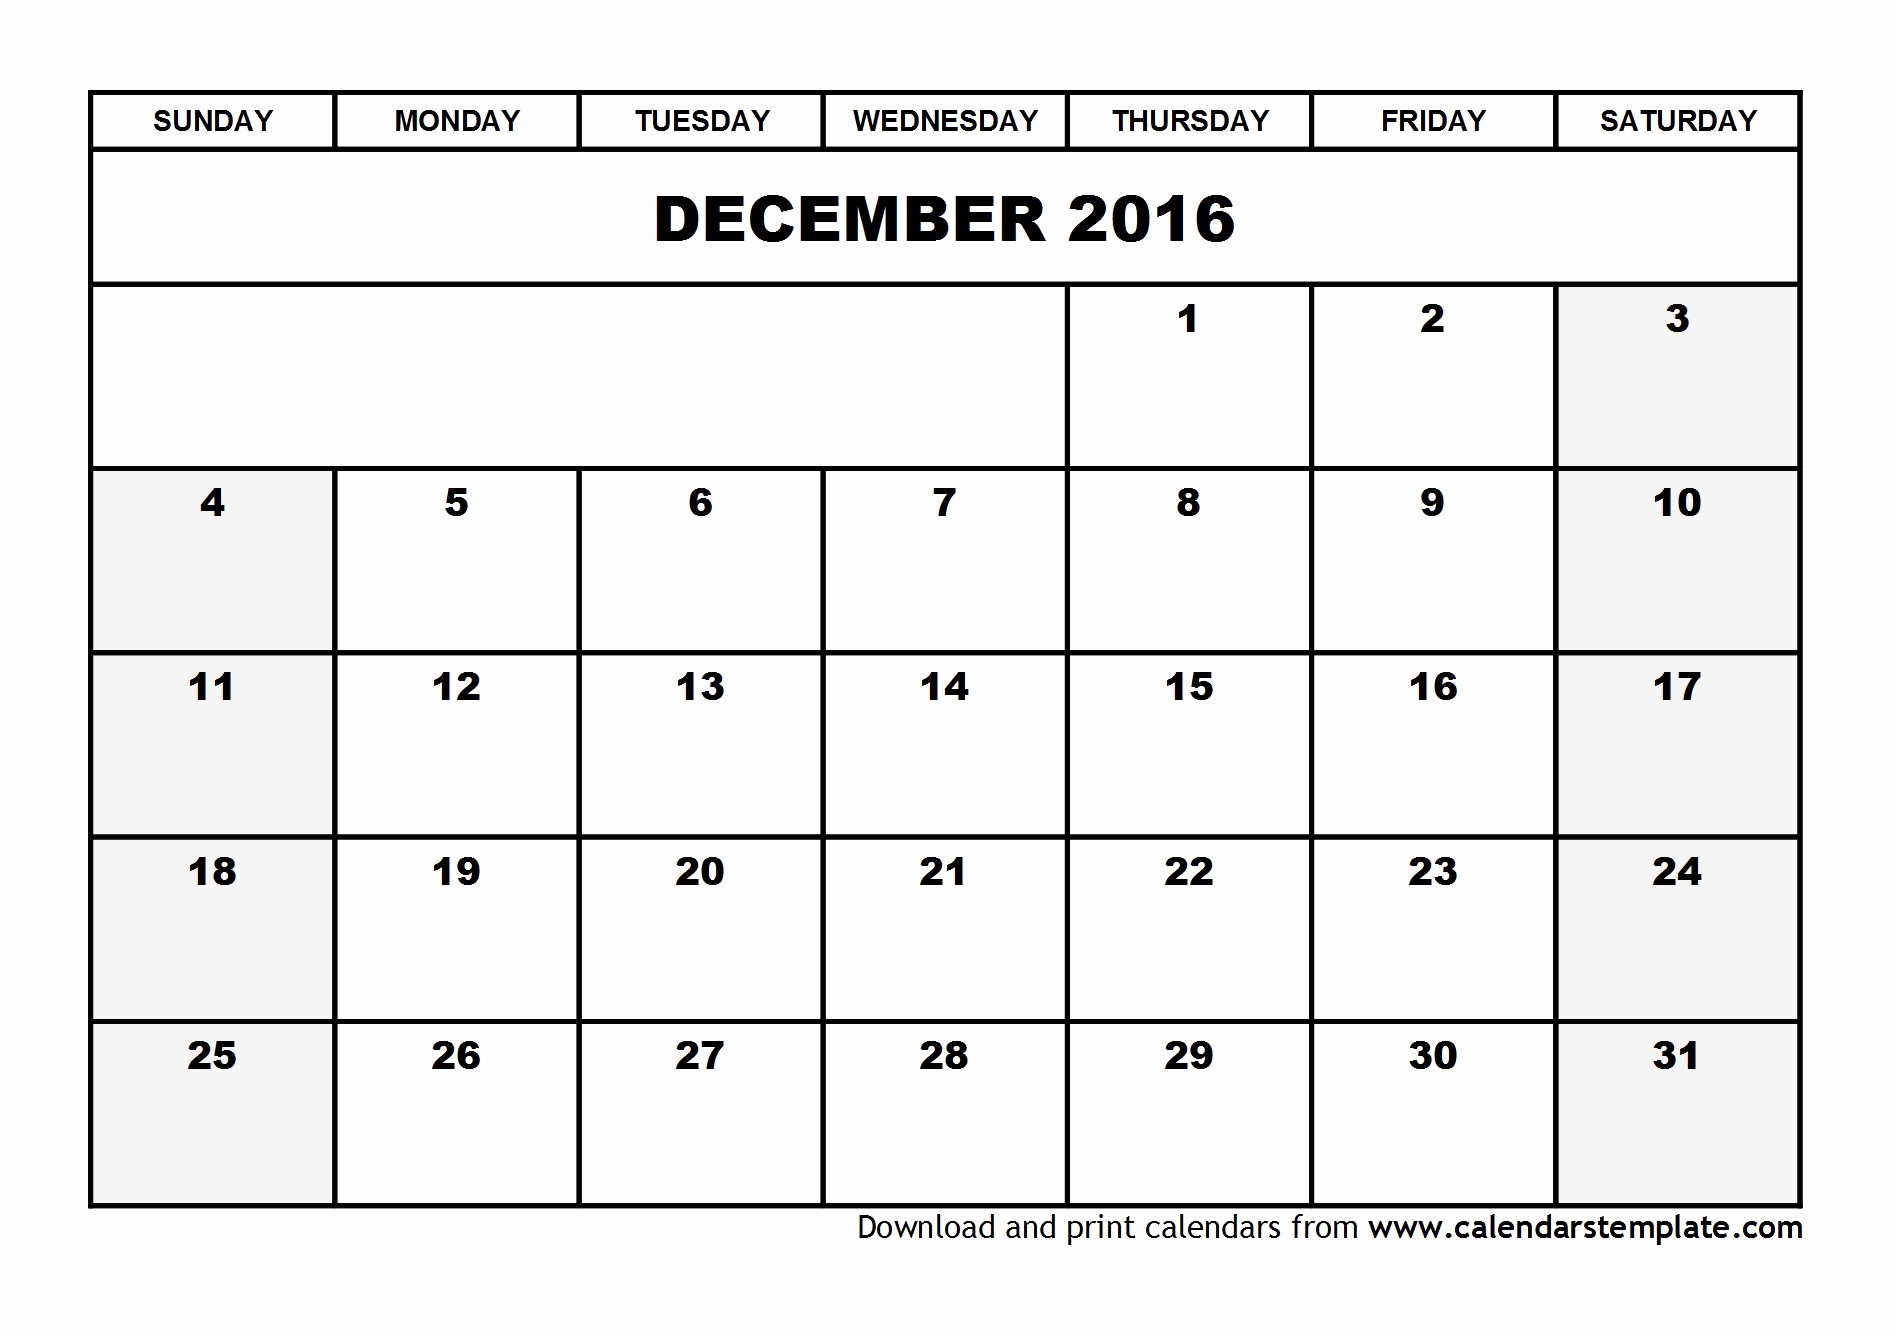 Blank December Calendar 2016 Printable Unique December 2016 Calendar Template